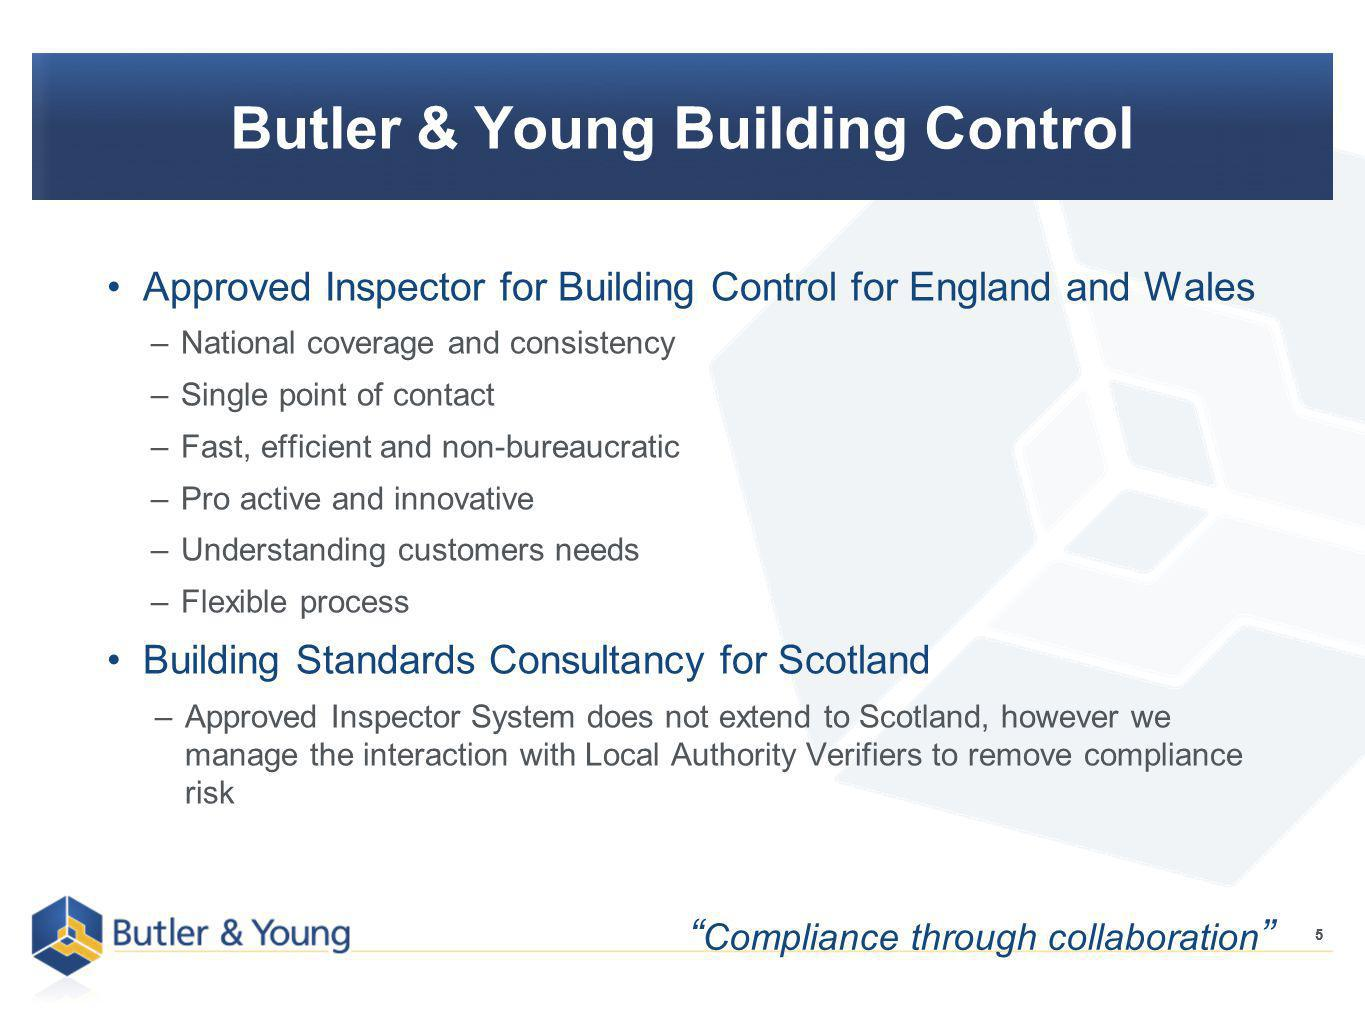 5 Butler & Young Building Control Approved Inspector for Building Control for England and Wales –National coverage and consistency –Single point of contact –Fast, efficient and non-bureaucratic –Pro active and innovative –Understanding customers needs –Flexible process Building Standards Consultancy for Scotland –Approved Inspector System does not extend to Scotland, however we manage the interaction with Local Authority Verifiers to remove compliance risk 5 Compliance through collaboration